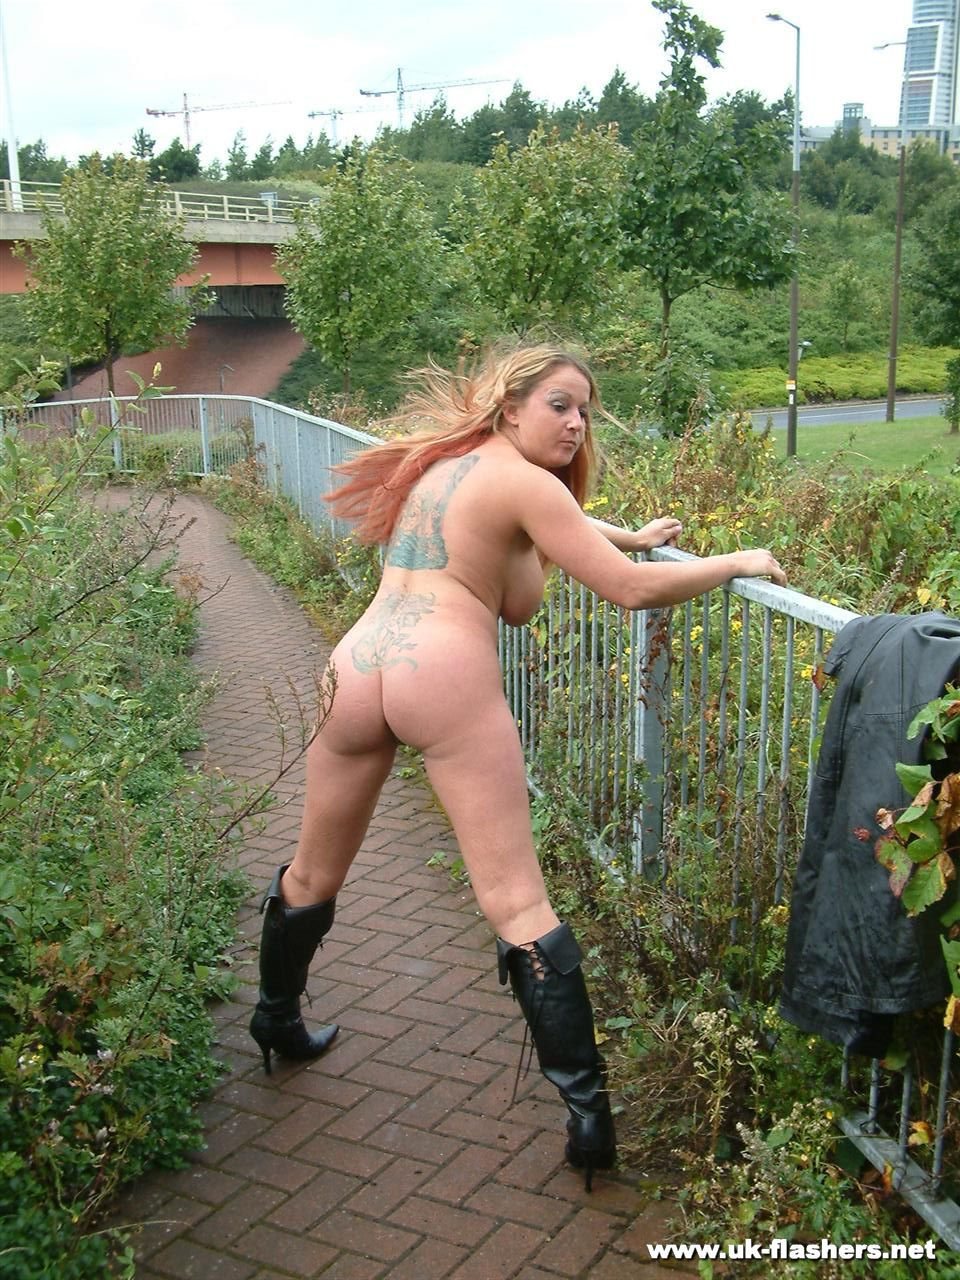 Seems Milf mom outdoor nudity consider